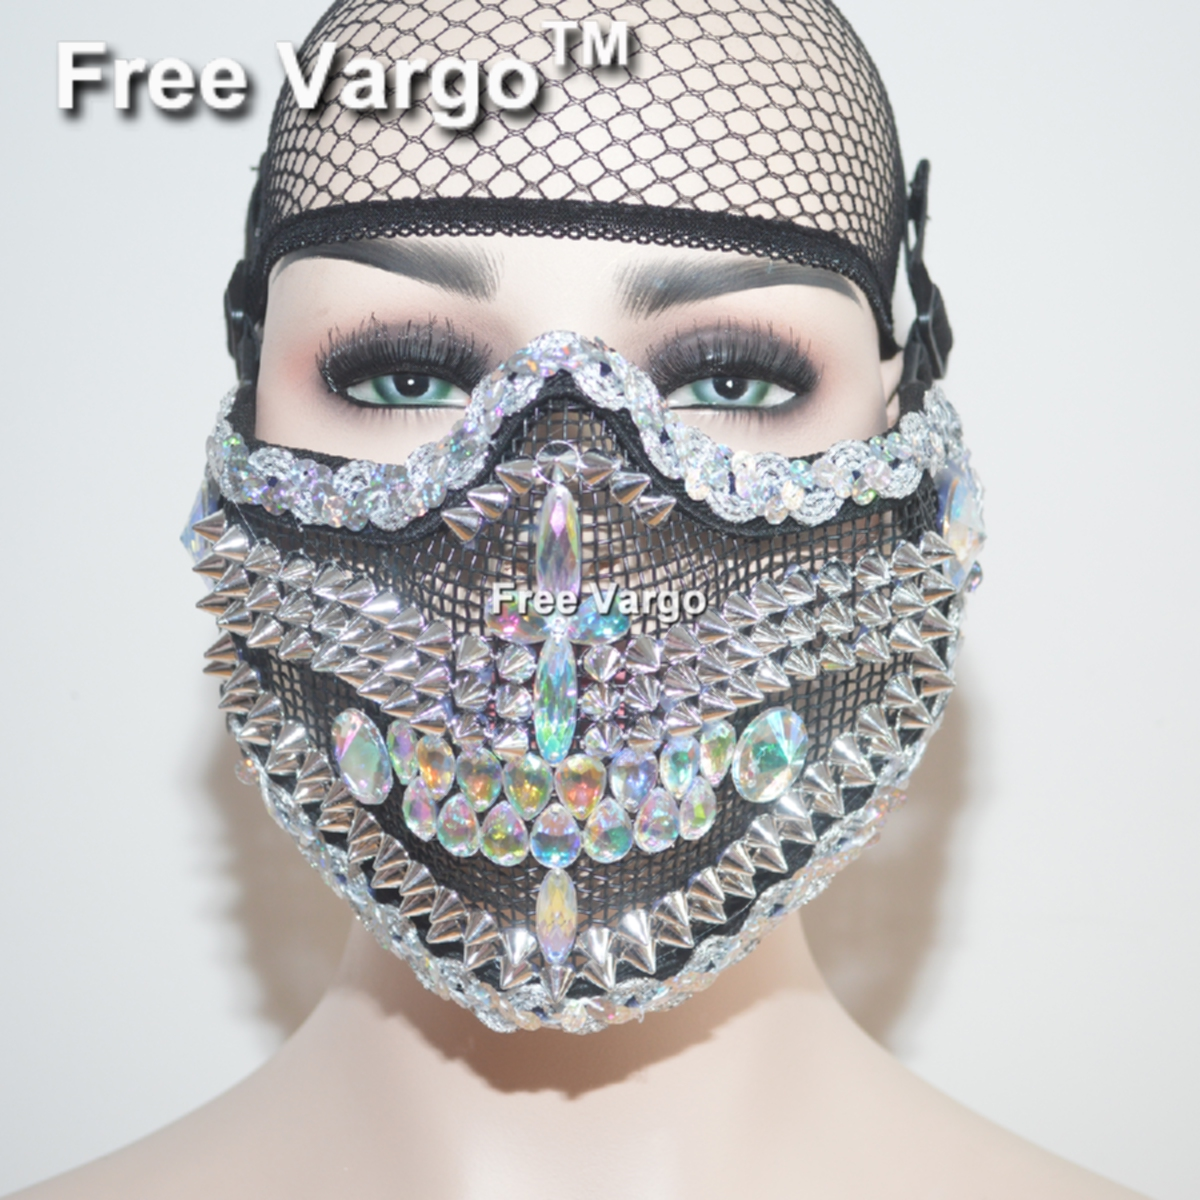 Holographic Rhinestone Burning Man Halloween Masquerade Face Mask Costume Summer Festival Rave Clothes Outfits Gear